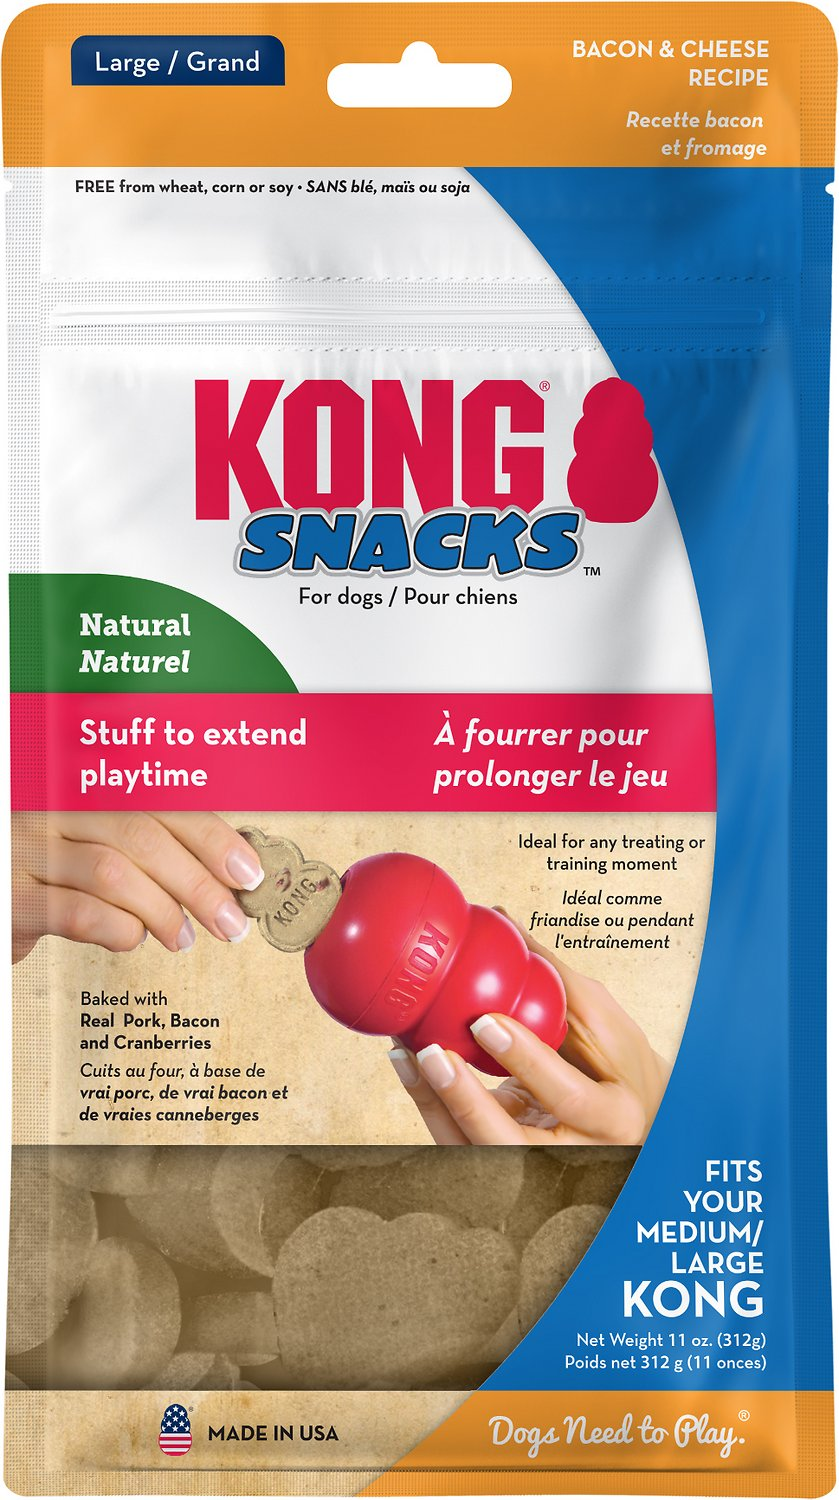 KONG Snack Bacon & Cheese Treat Inserts